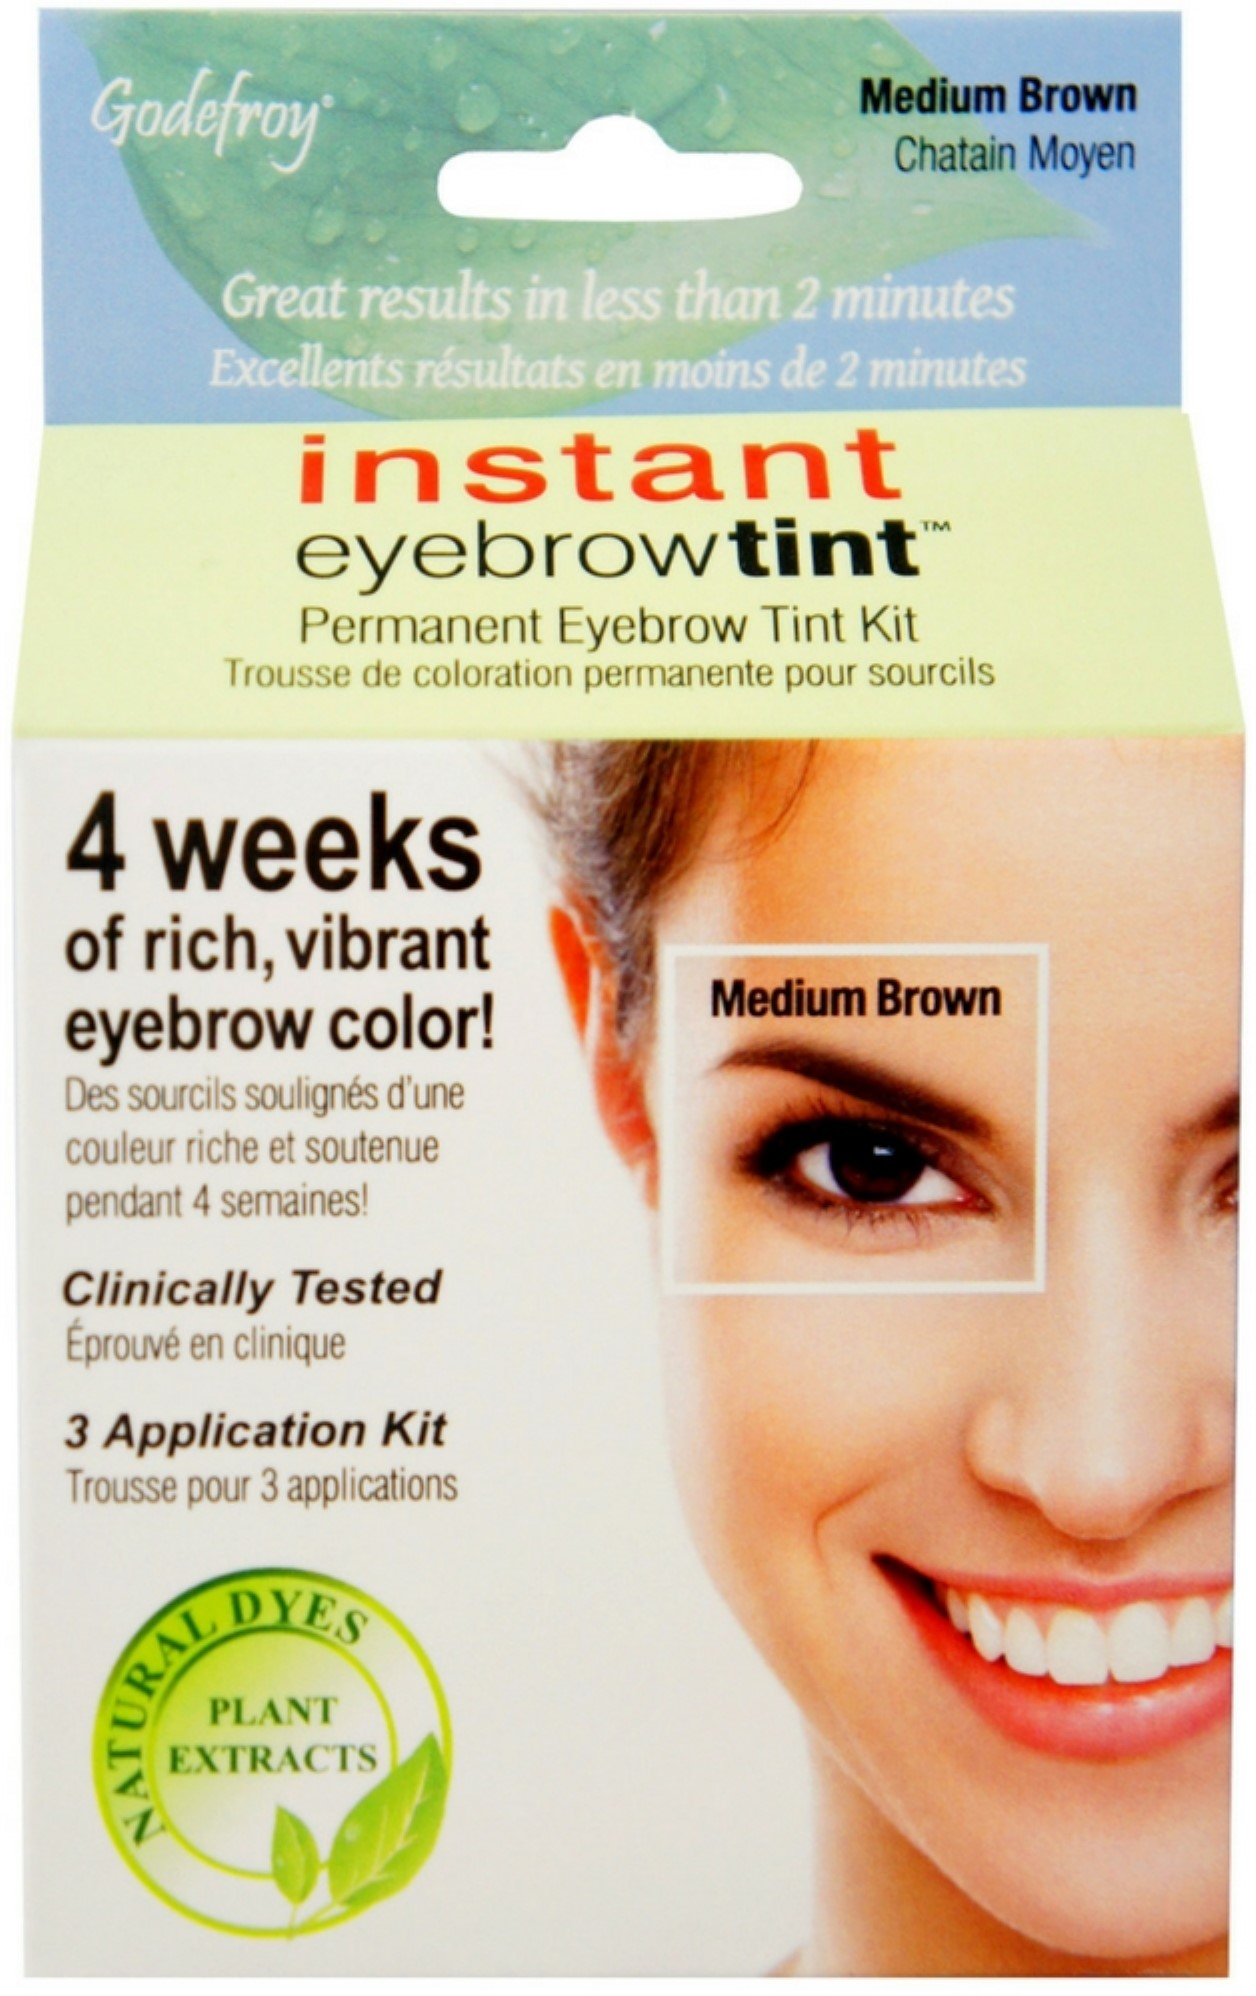 Eyebrow Tinting Kit Walmart : eyebrow, tinting, walmart, Godefroy, Instant, Eyebrow, Natural, Plant, Based, Dyes,, Medium, Brown, Walmart.com